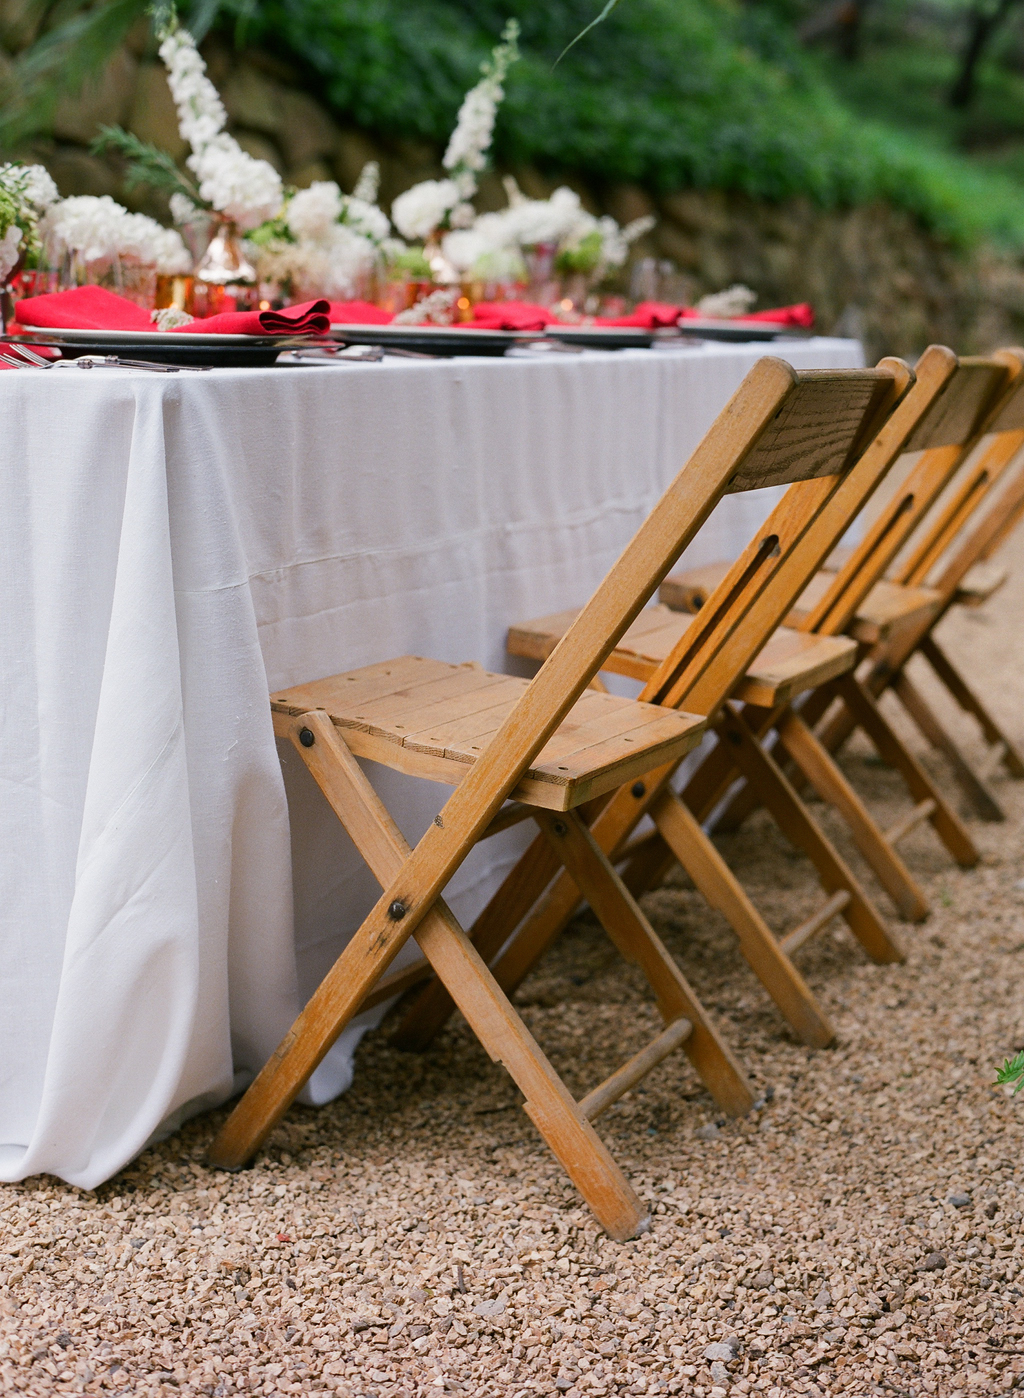 Styled-wedding-santa-barbara-chic-beaux-arts-photographie-italian-bohemian-wedding-venue-table-setting-red-white-flowers-wood-chairs-%20099.full